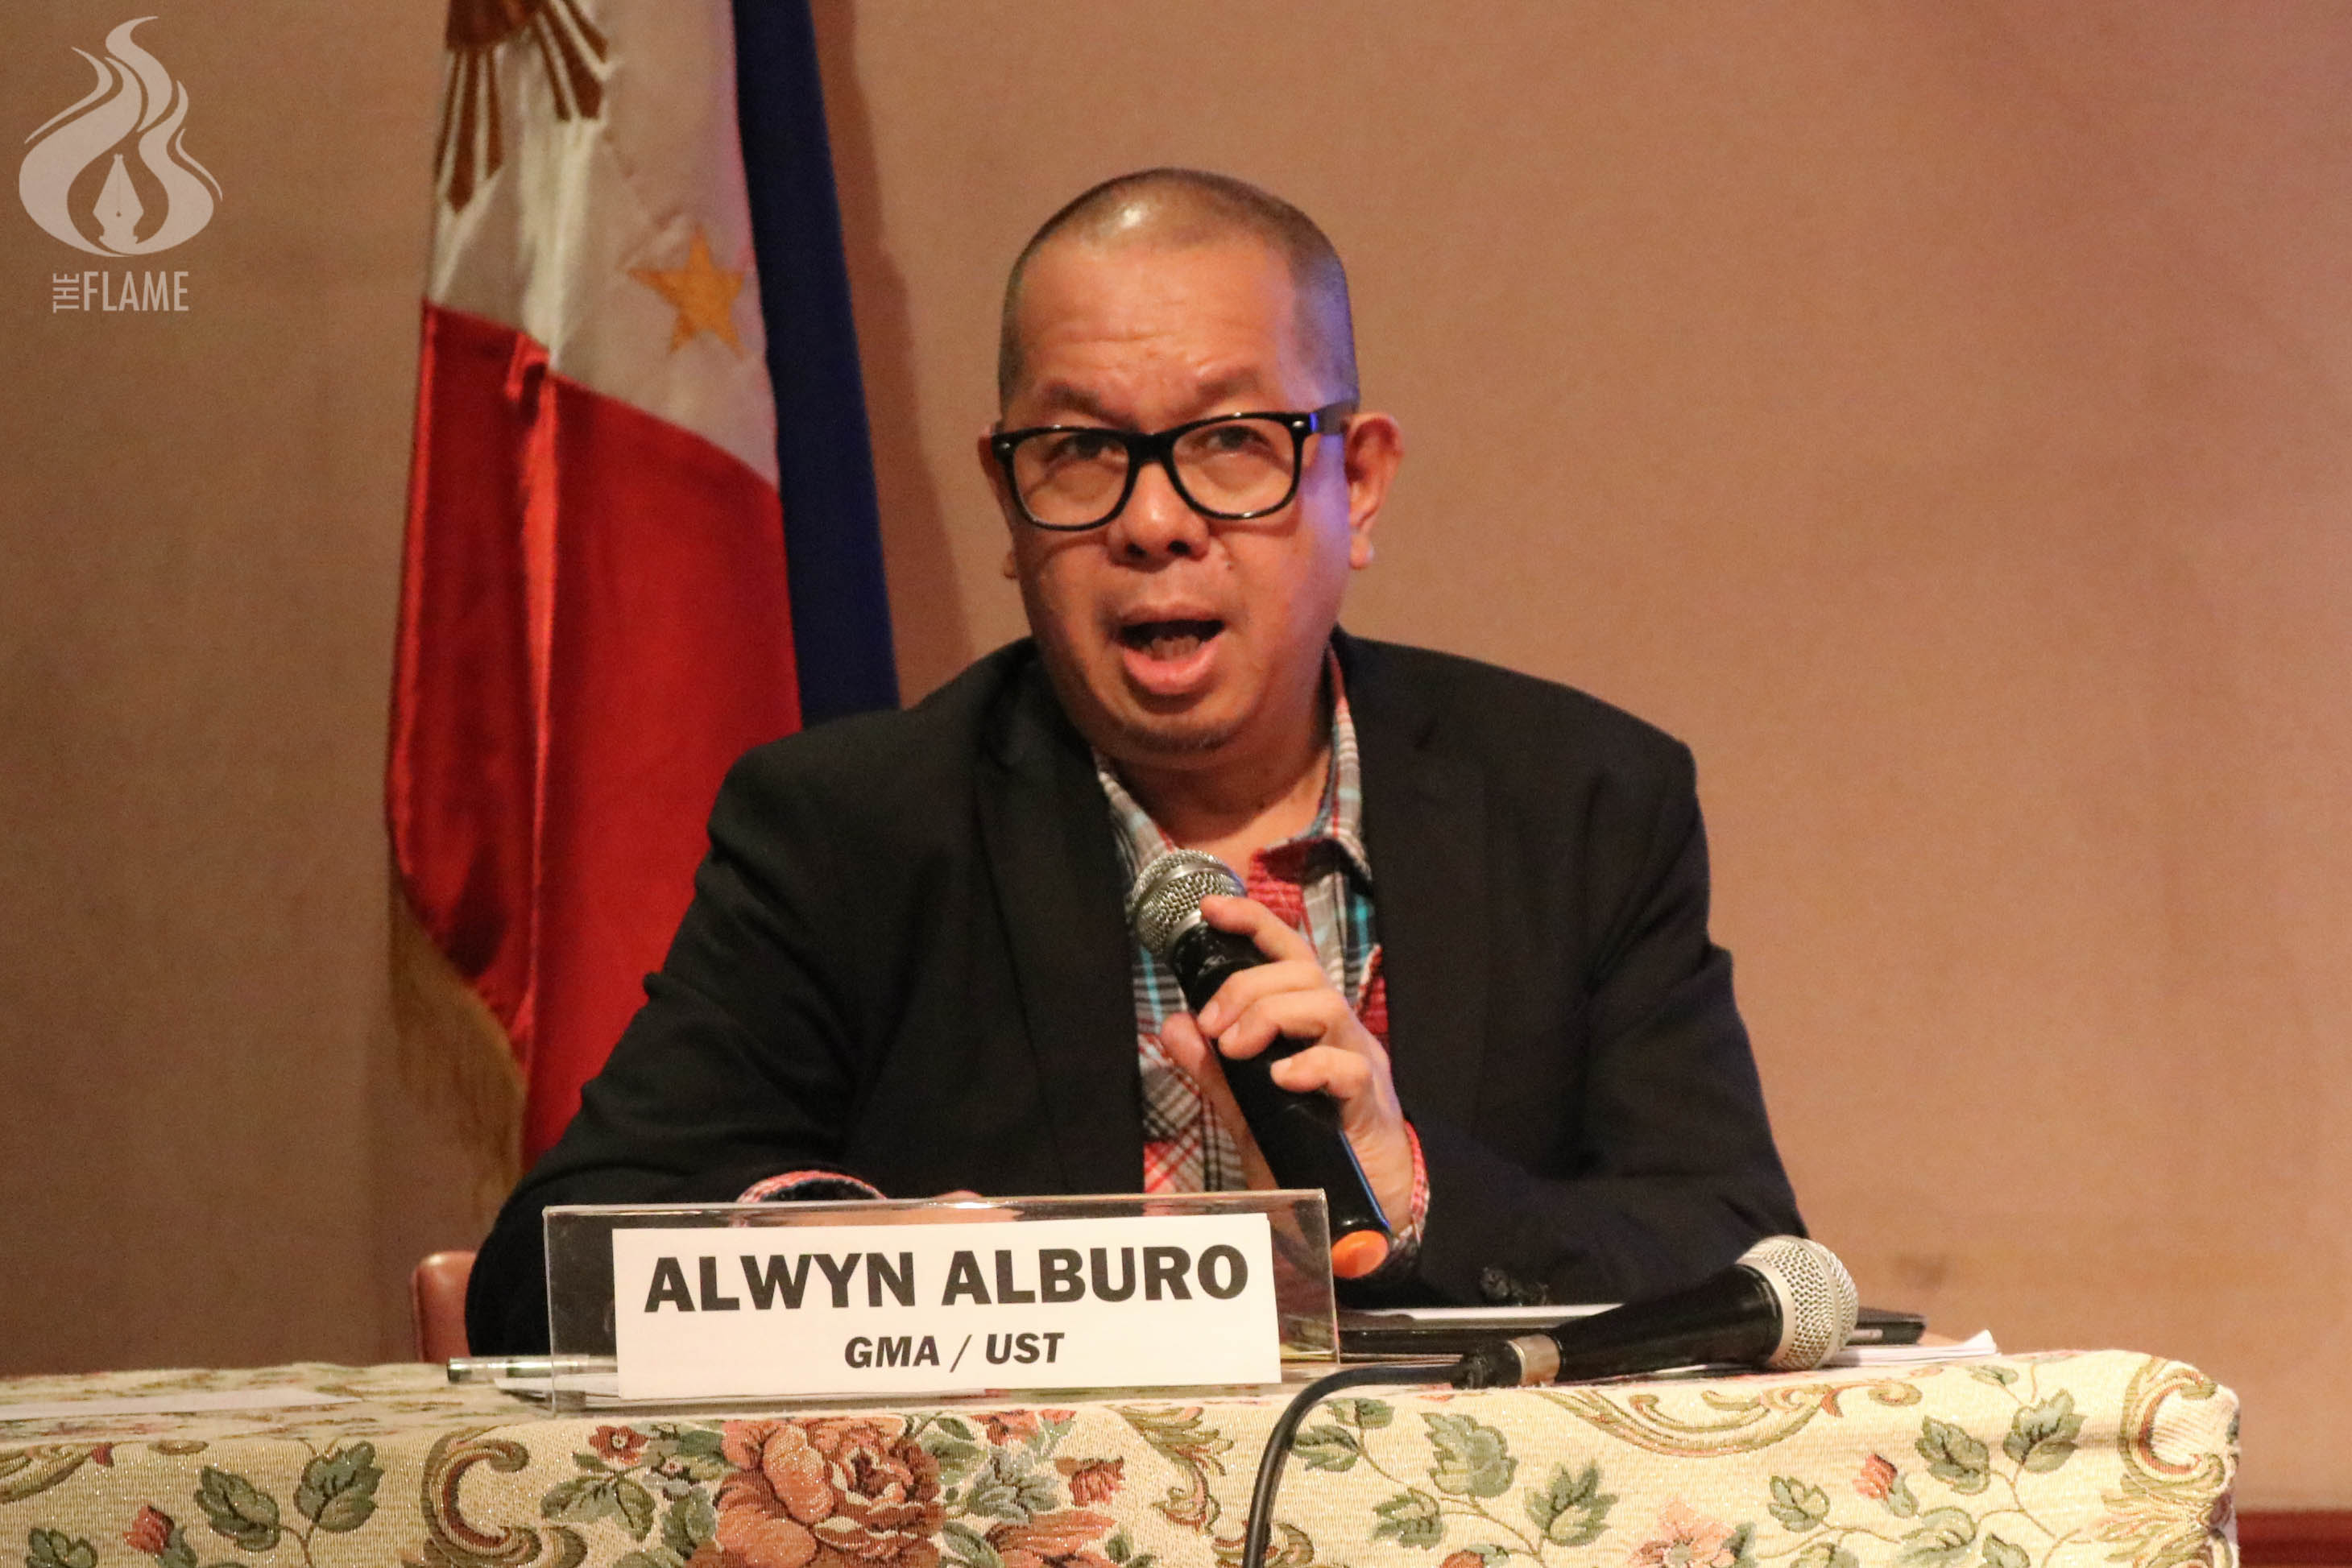 Preserve ethics in work, journalists urged